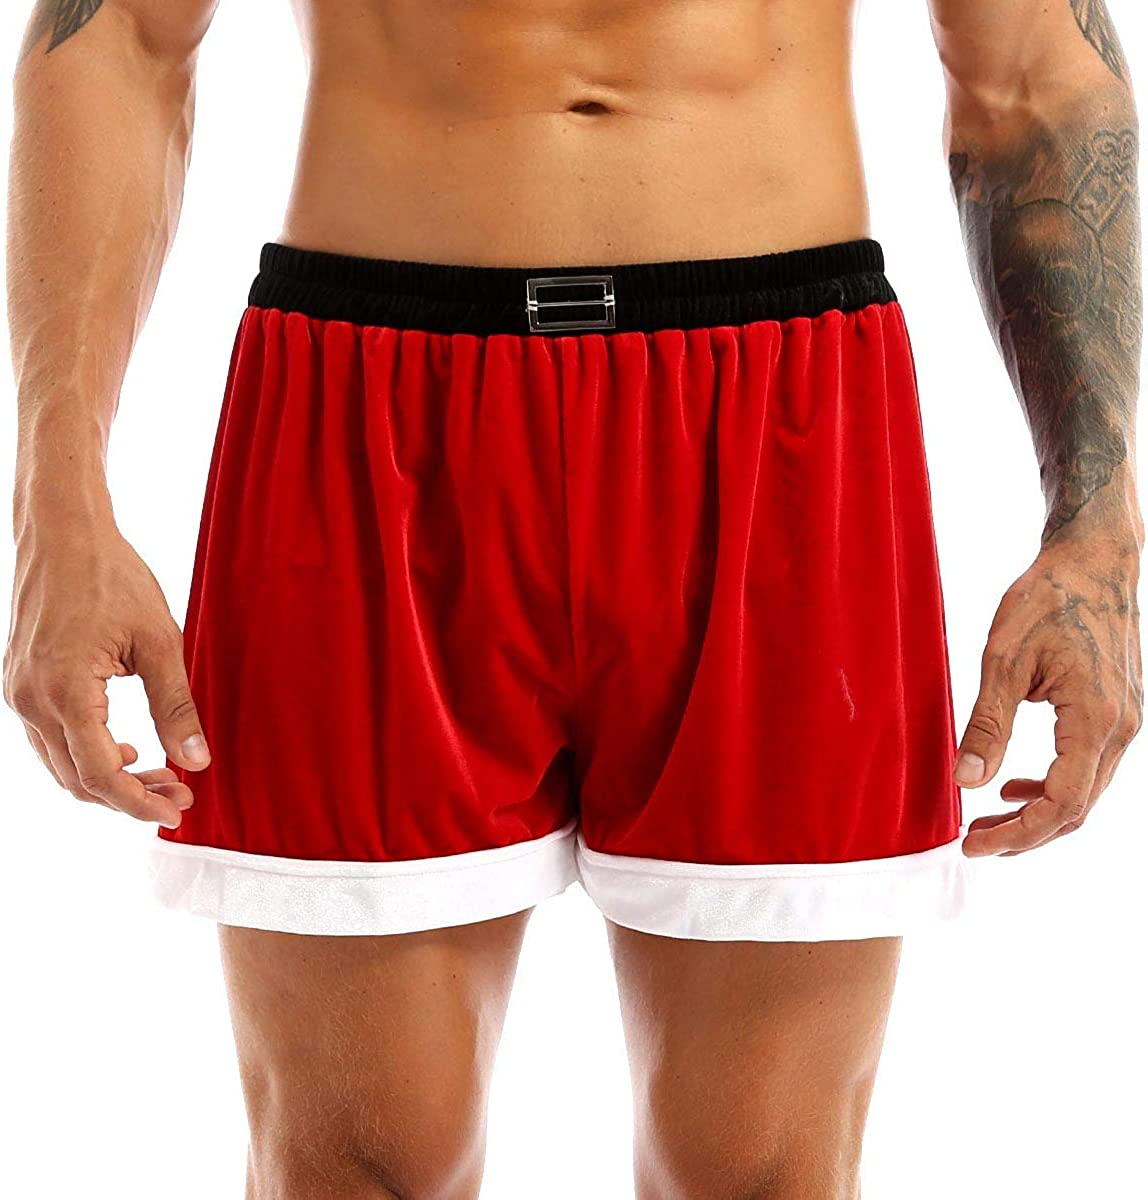 QinCiao Mens Shiny Christmas Santa Claus Underwear Belted Printed Cosplay Lingerie Briefs